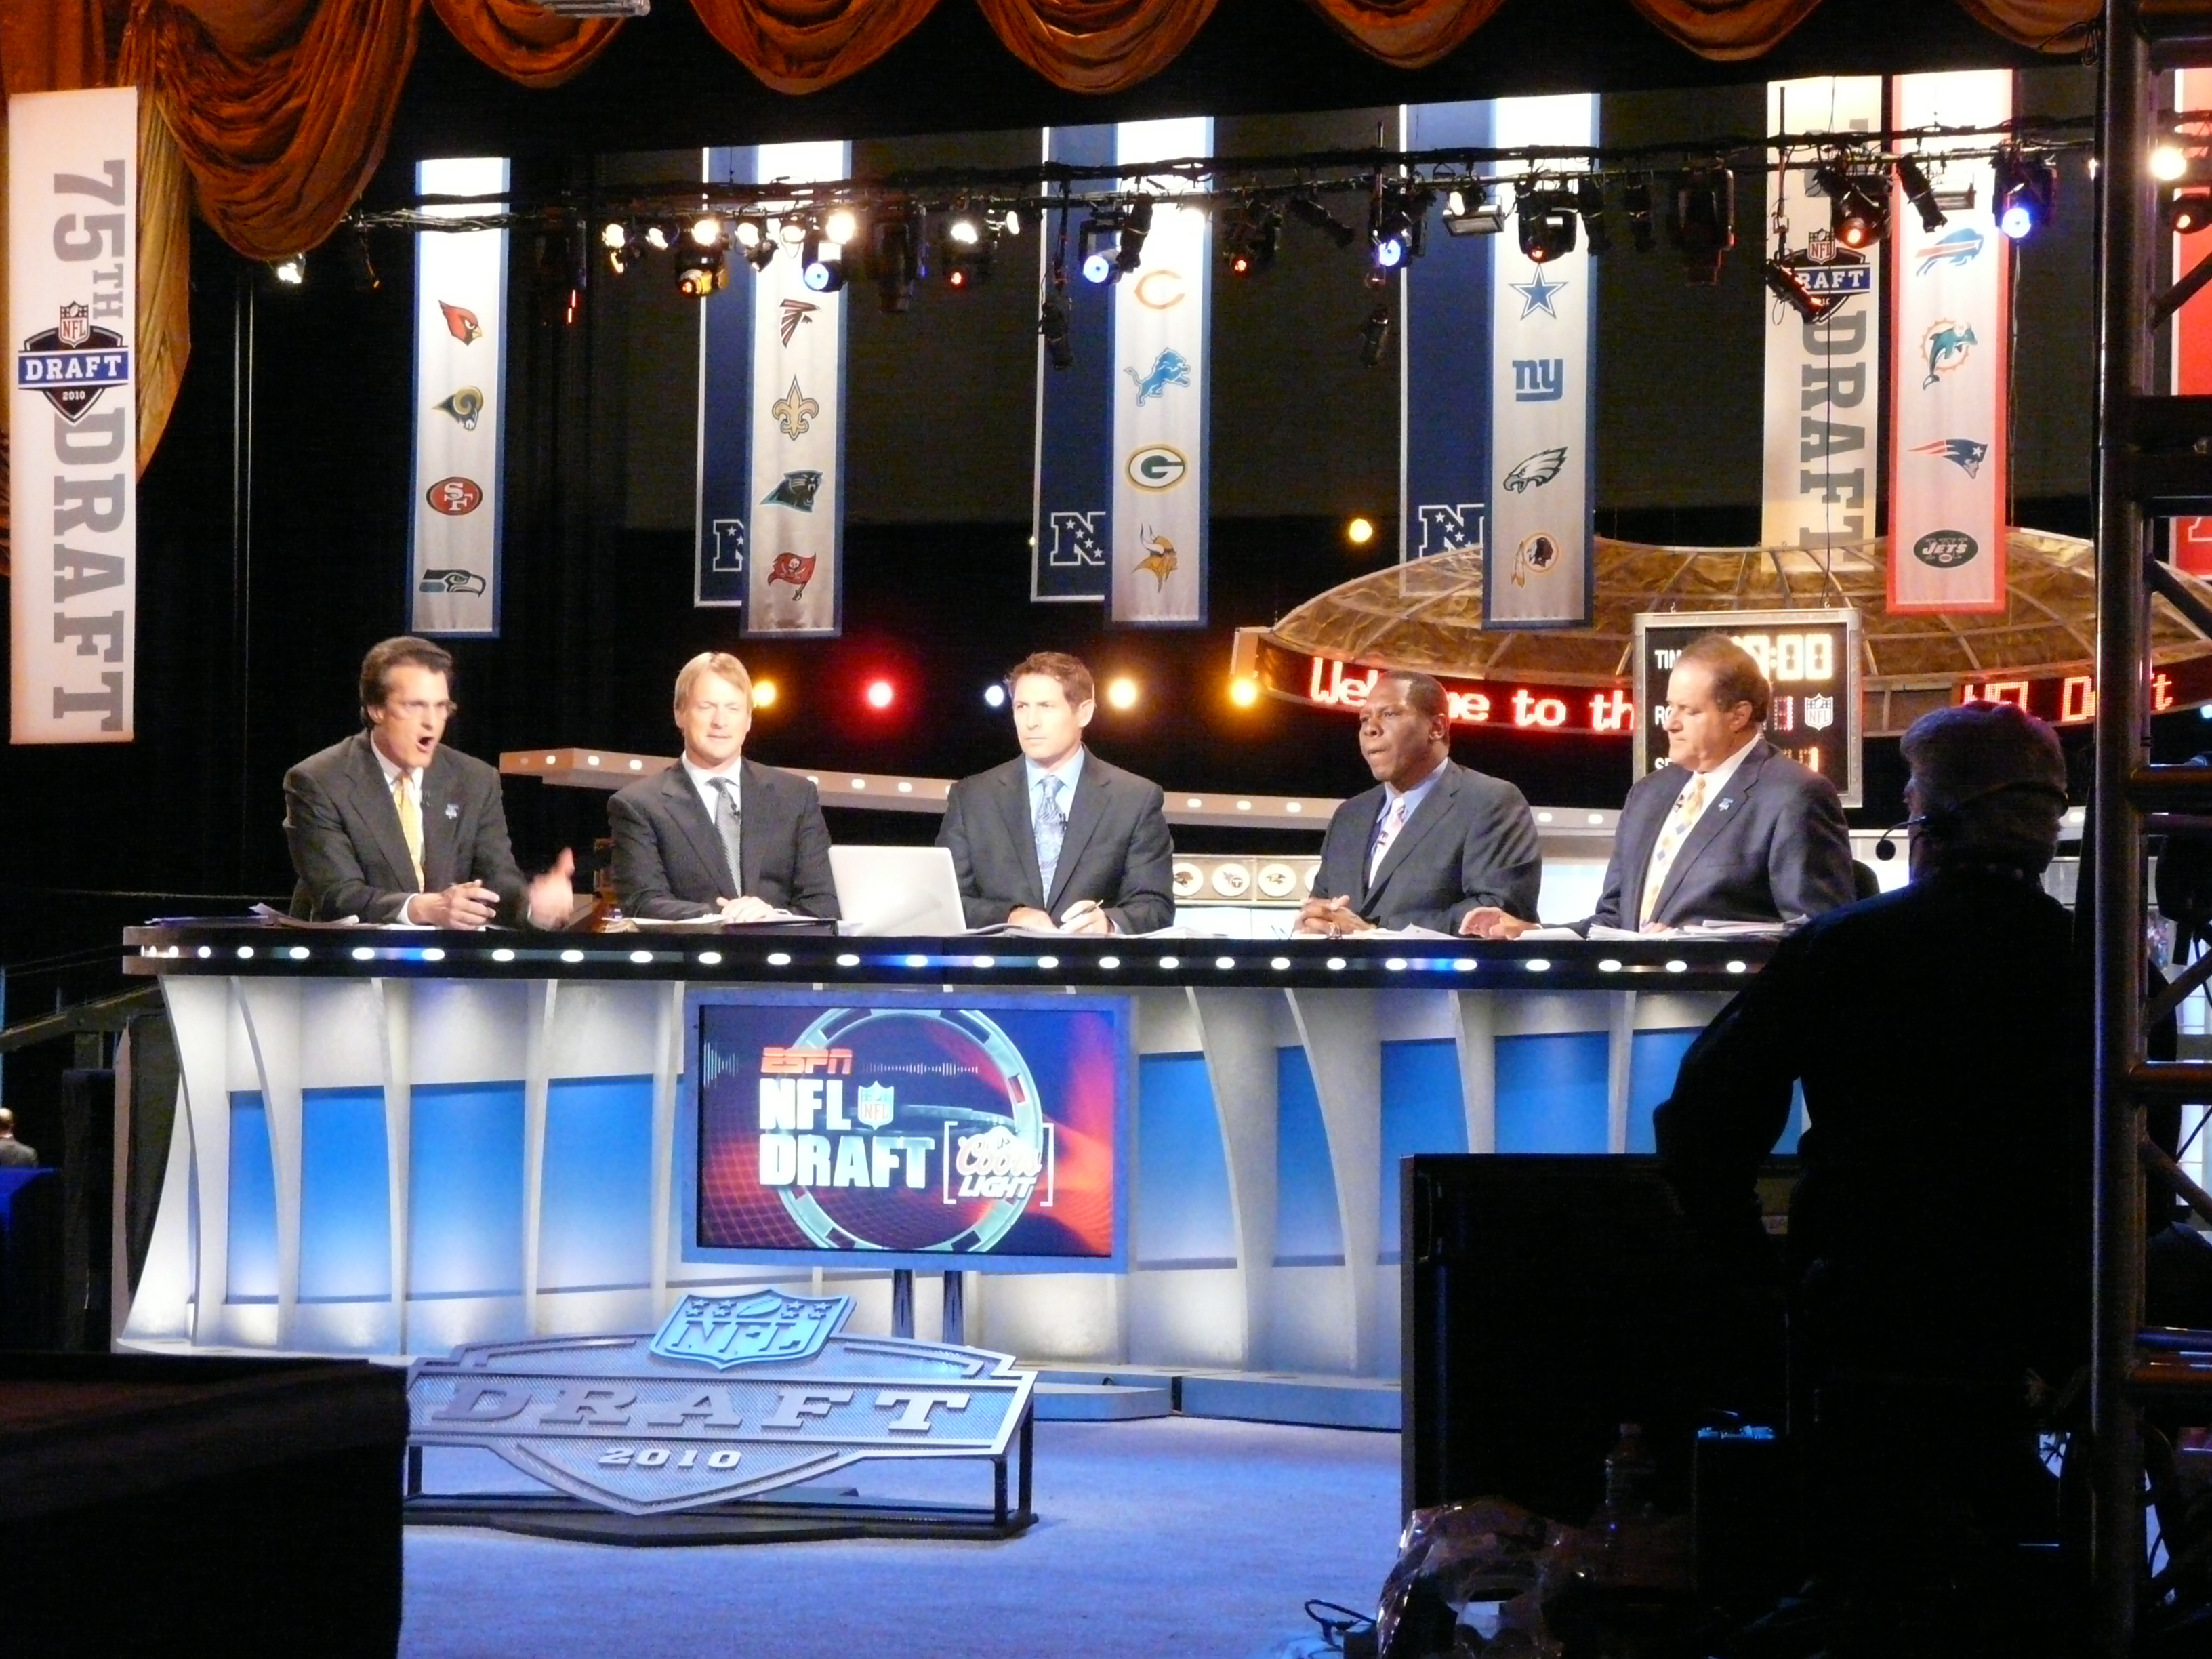 NFL_Draft_2010_ESPN_set.jpg